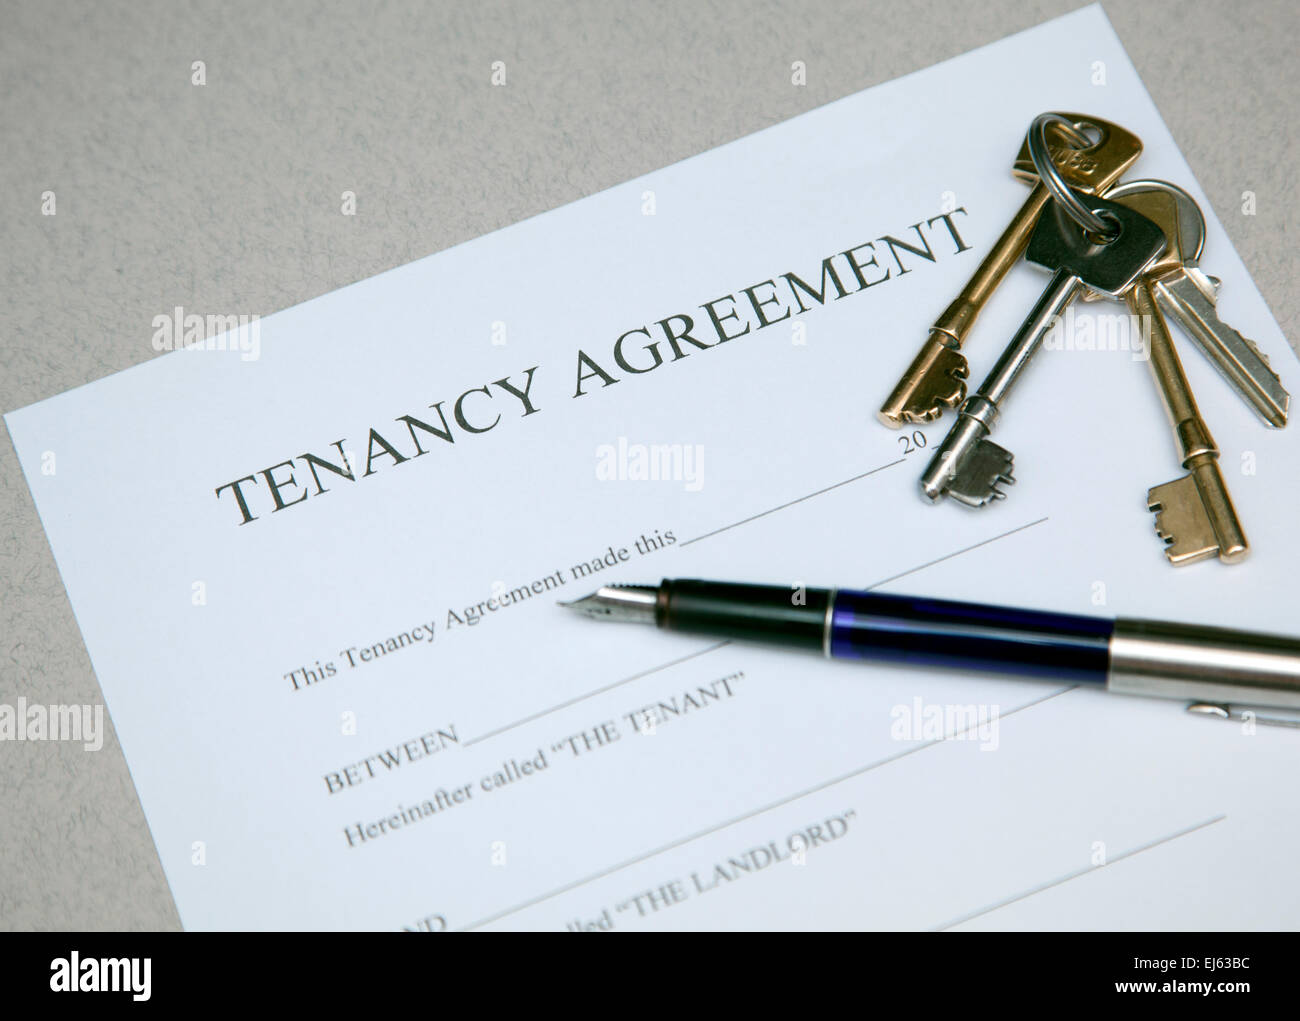 tenancy-agreement-document-and-house-key